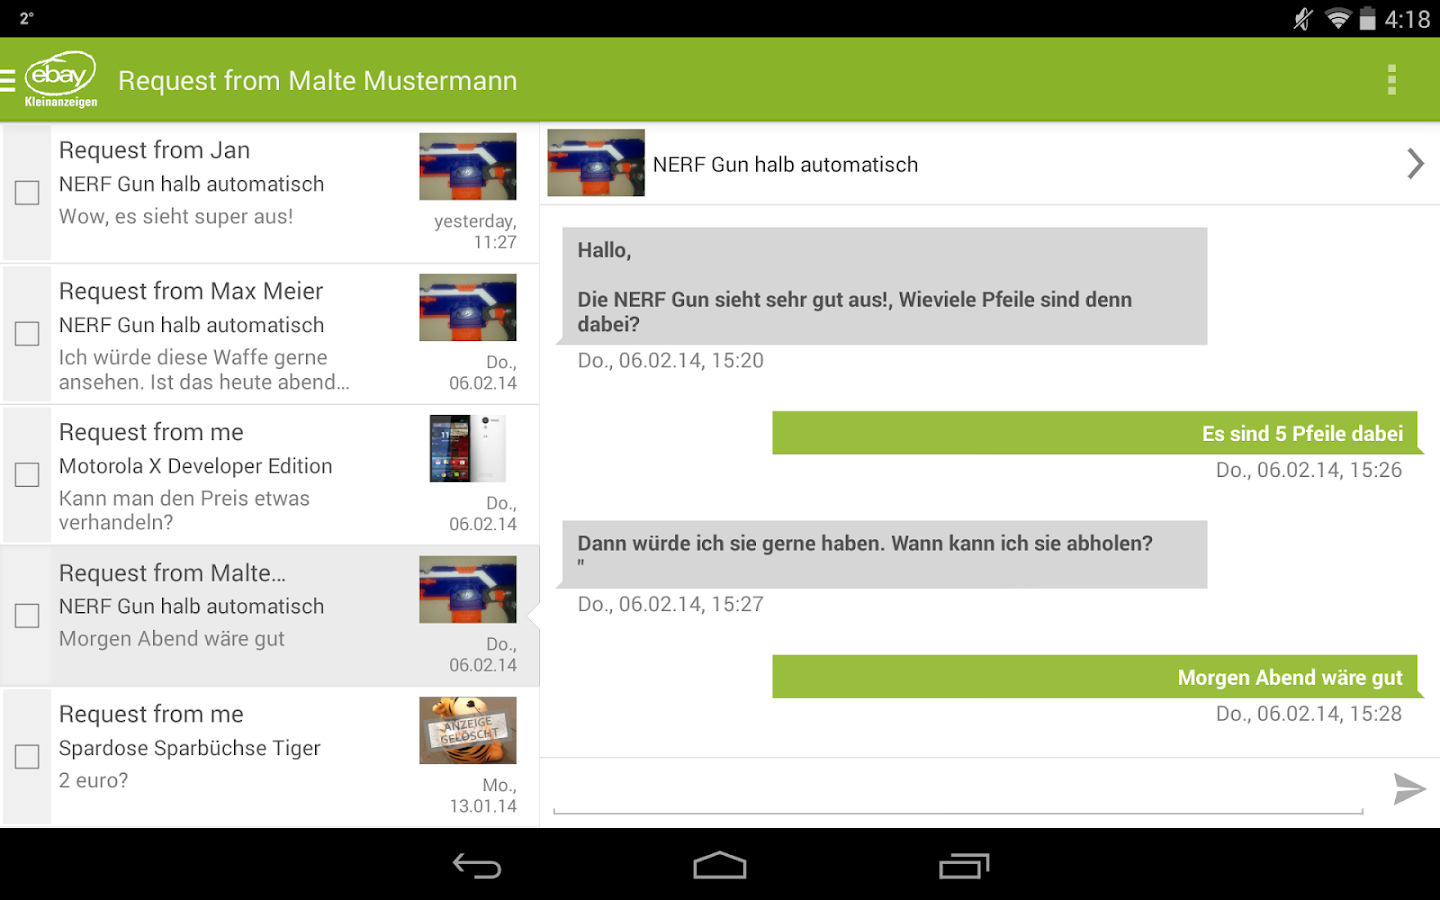 eBay Kleinanzeigen for Germany - screenshot